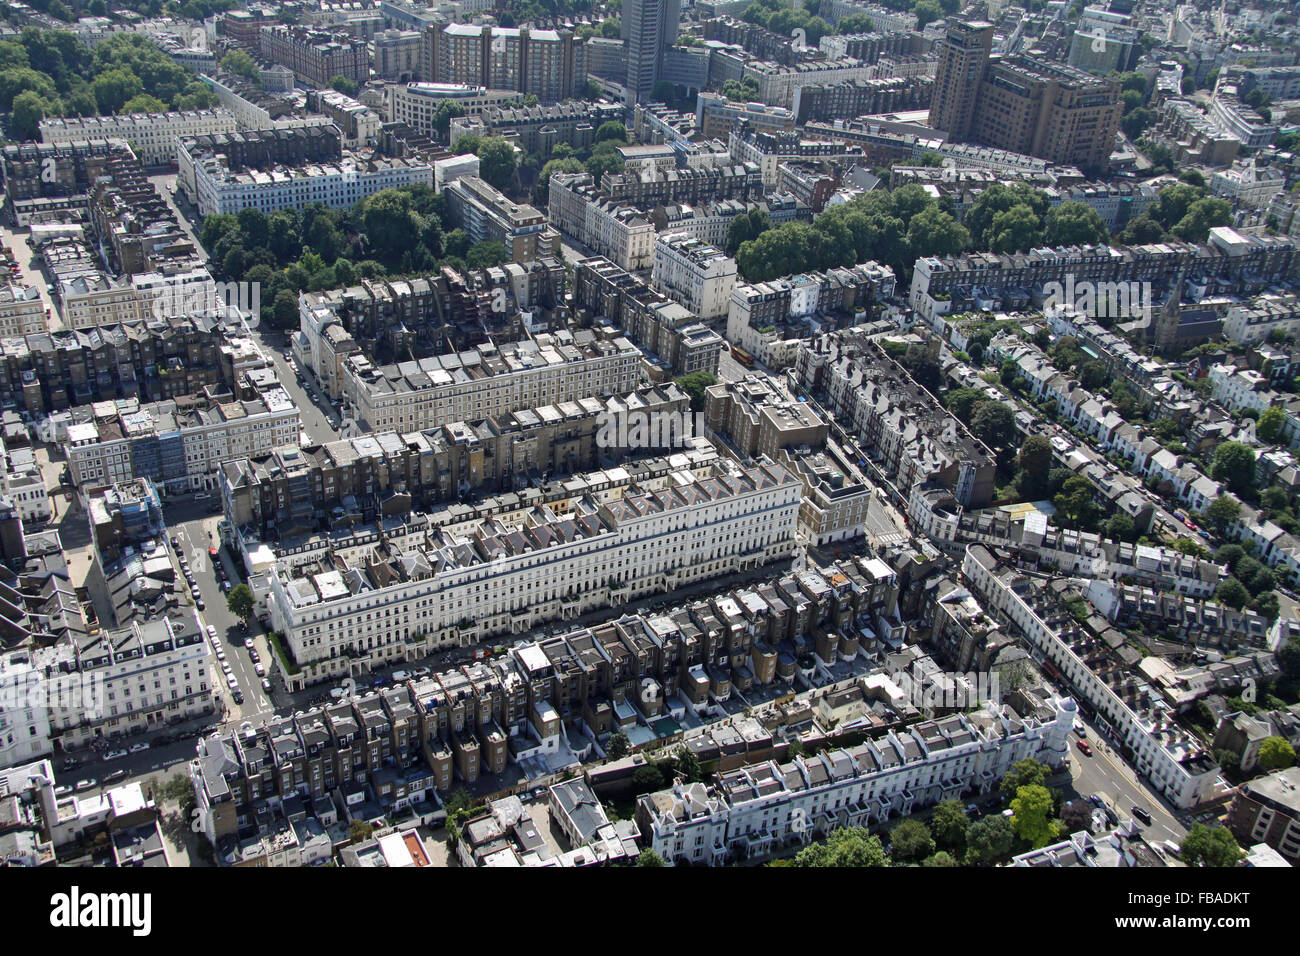 aerial view of Queens Gate Terrace in London SW7, UK - Stock Image